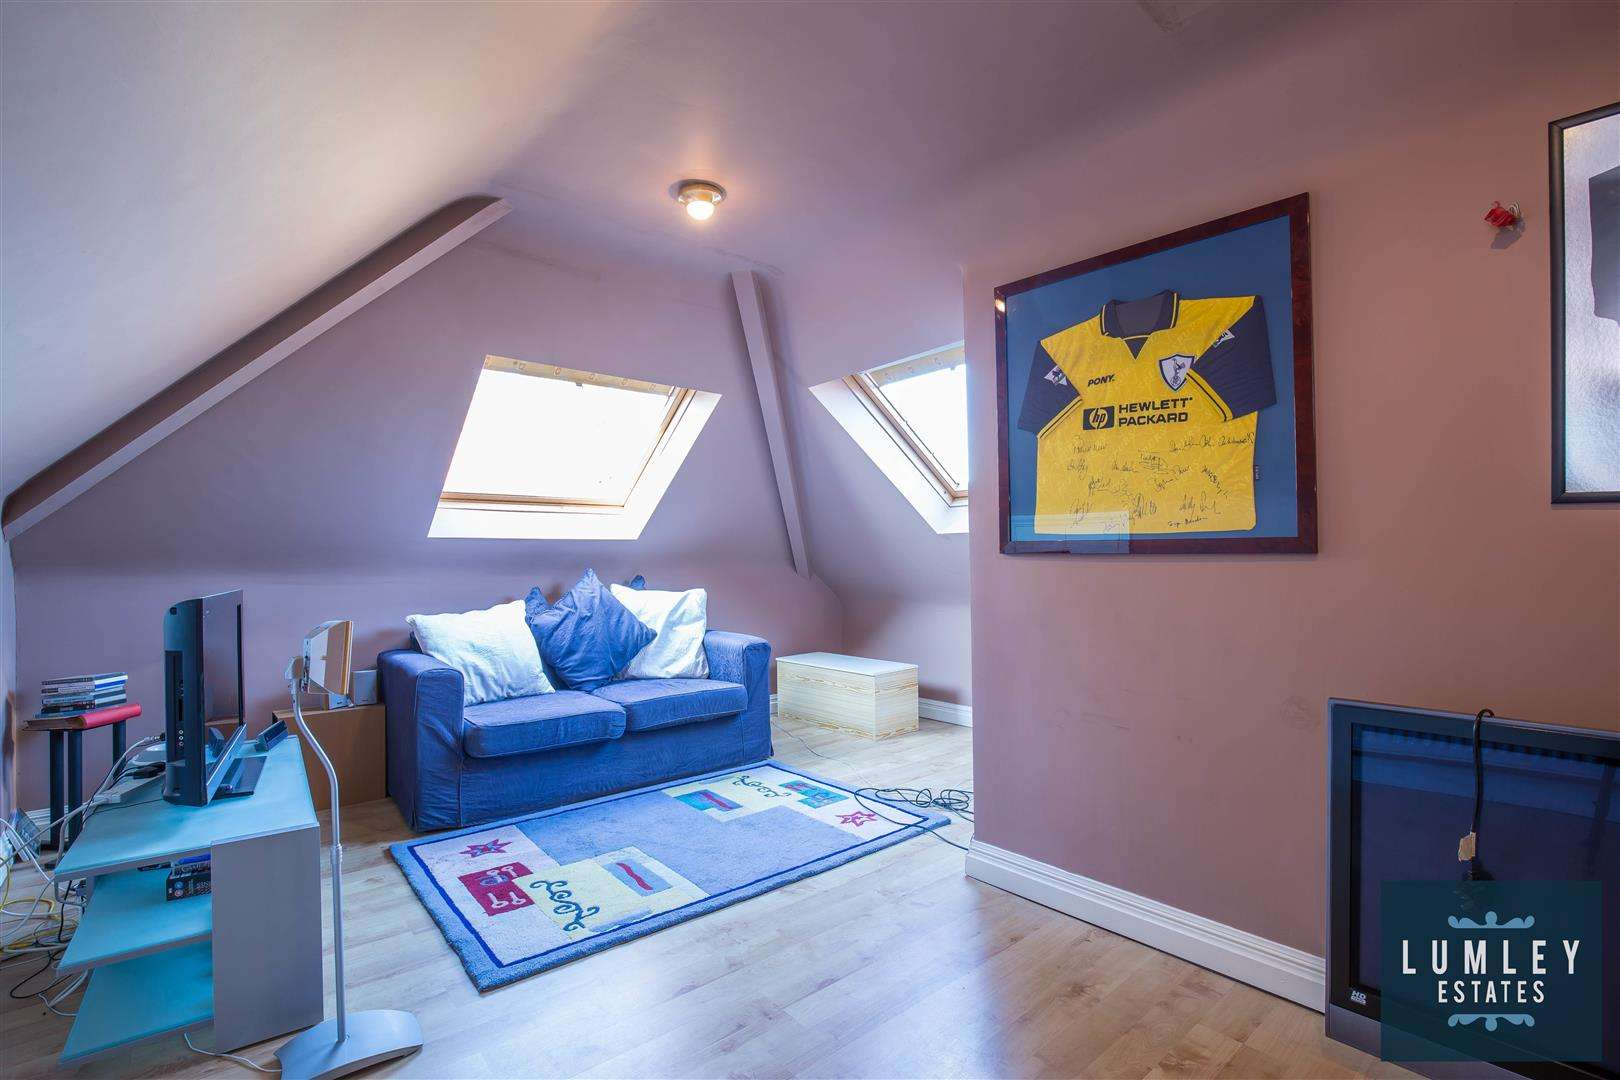 6 bed to rent - (Property Image 13)